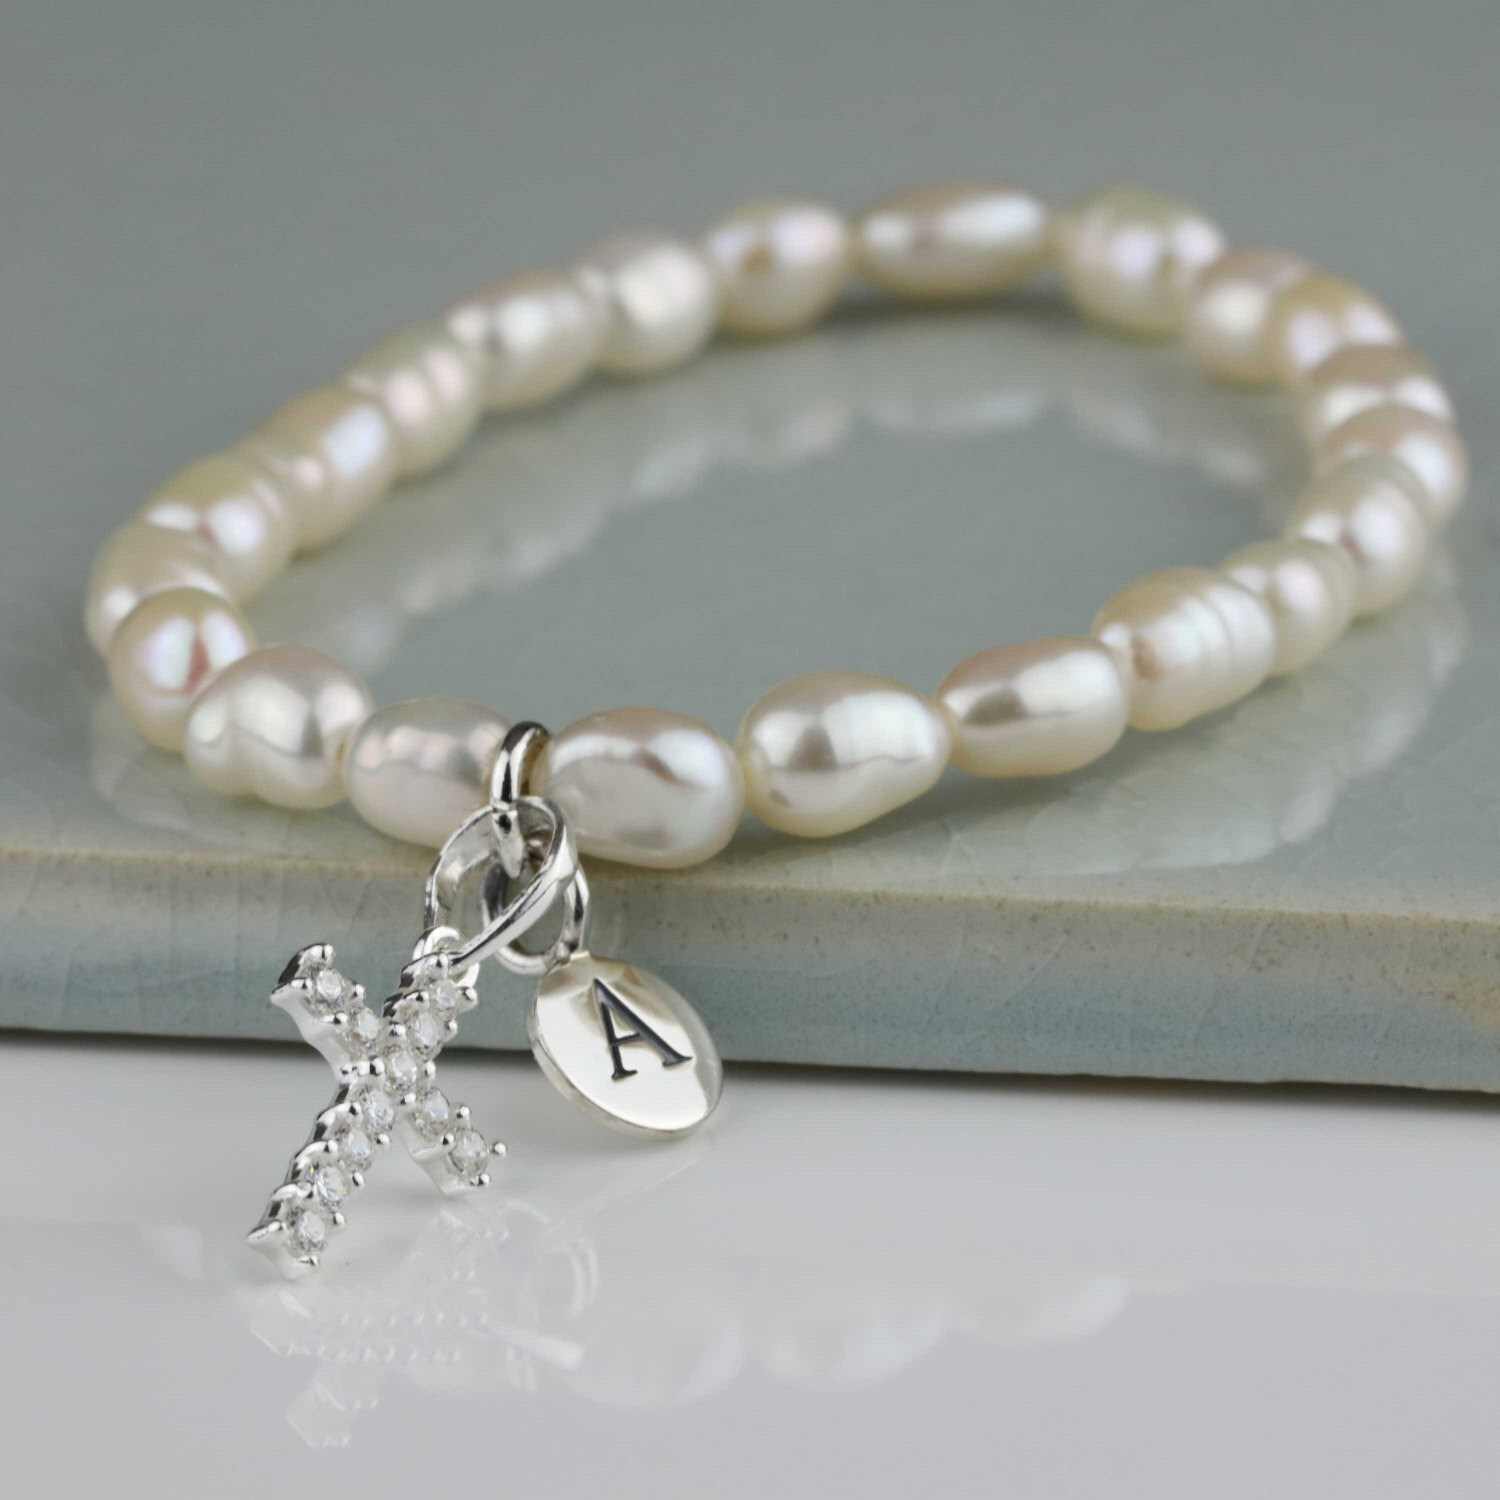 freshwater pearl bracelet with a solid silver cross charm